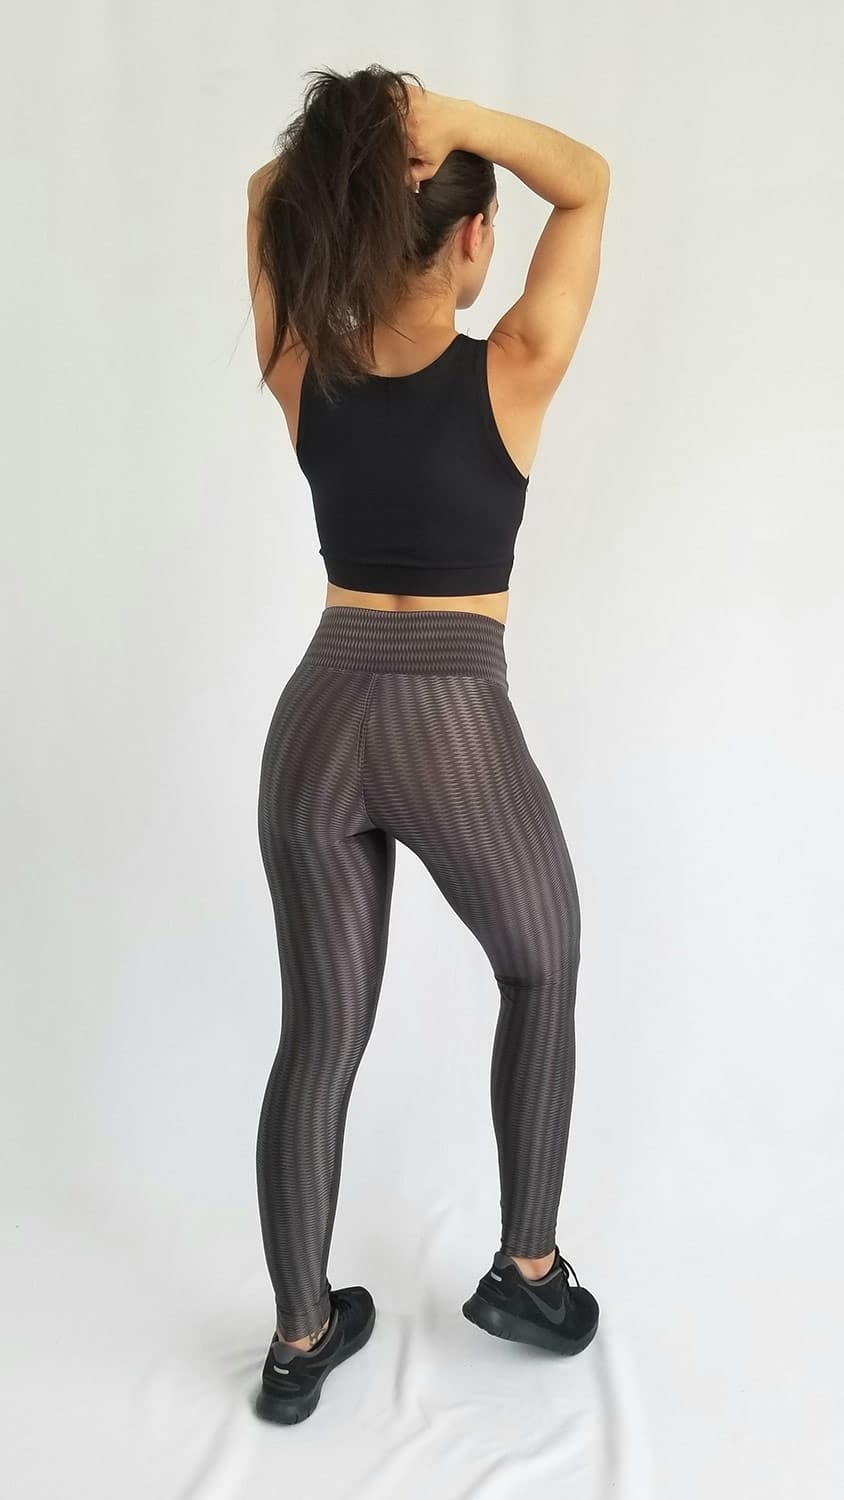 Metallic_Leggings_Dark_Grey_photo1